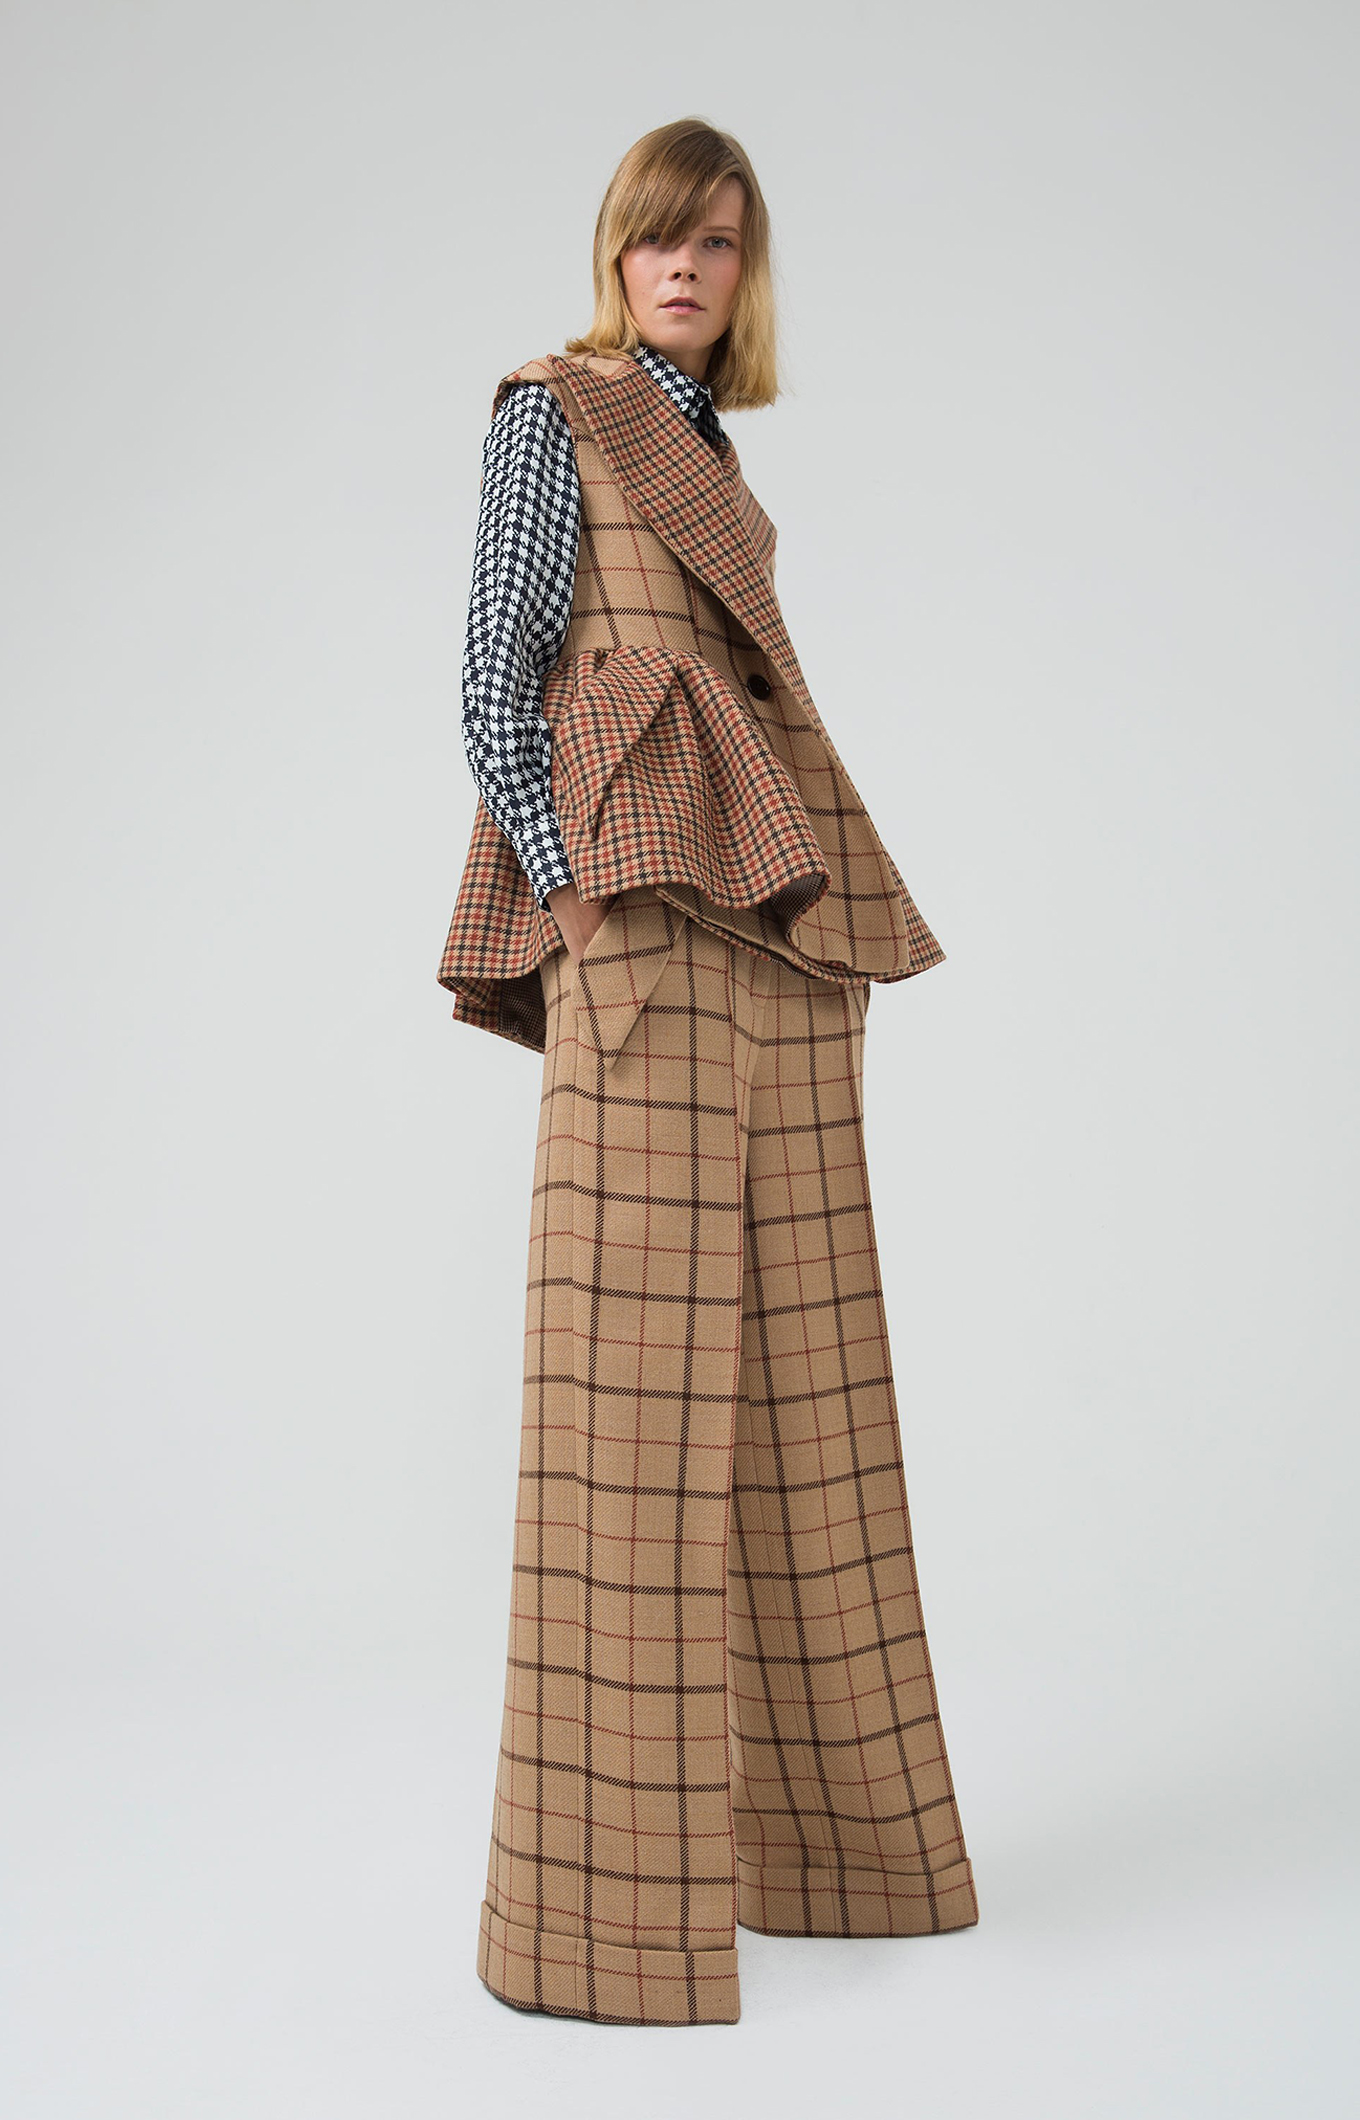 Dice Kayek<br>Pre-Fall 2018 <br>Look 01